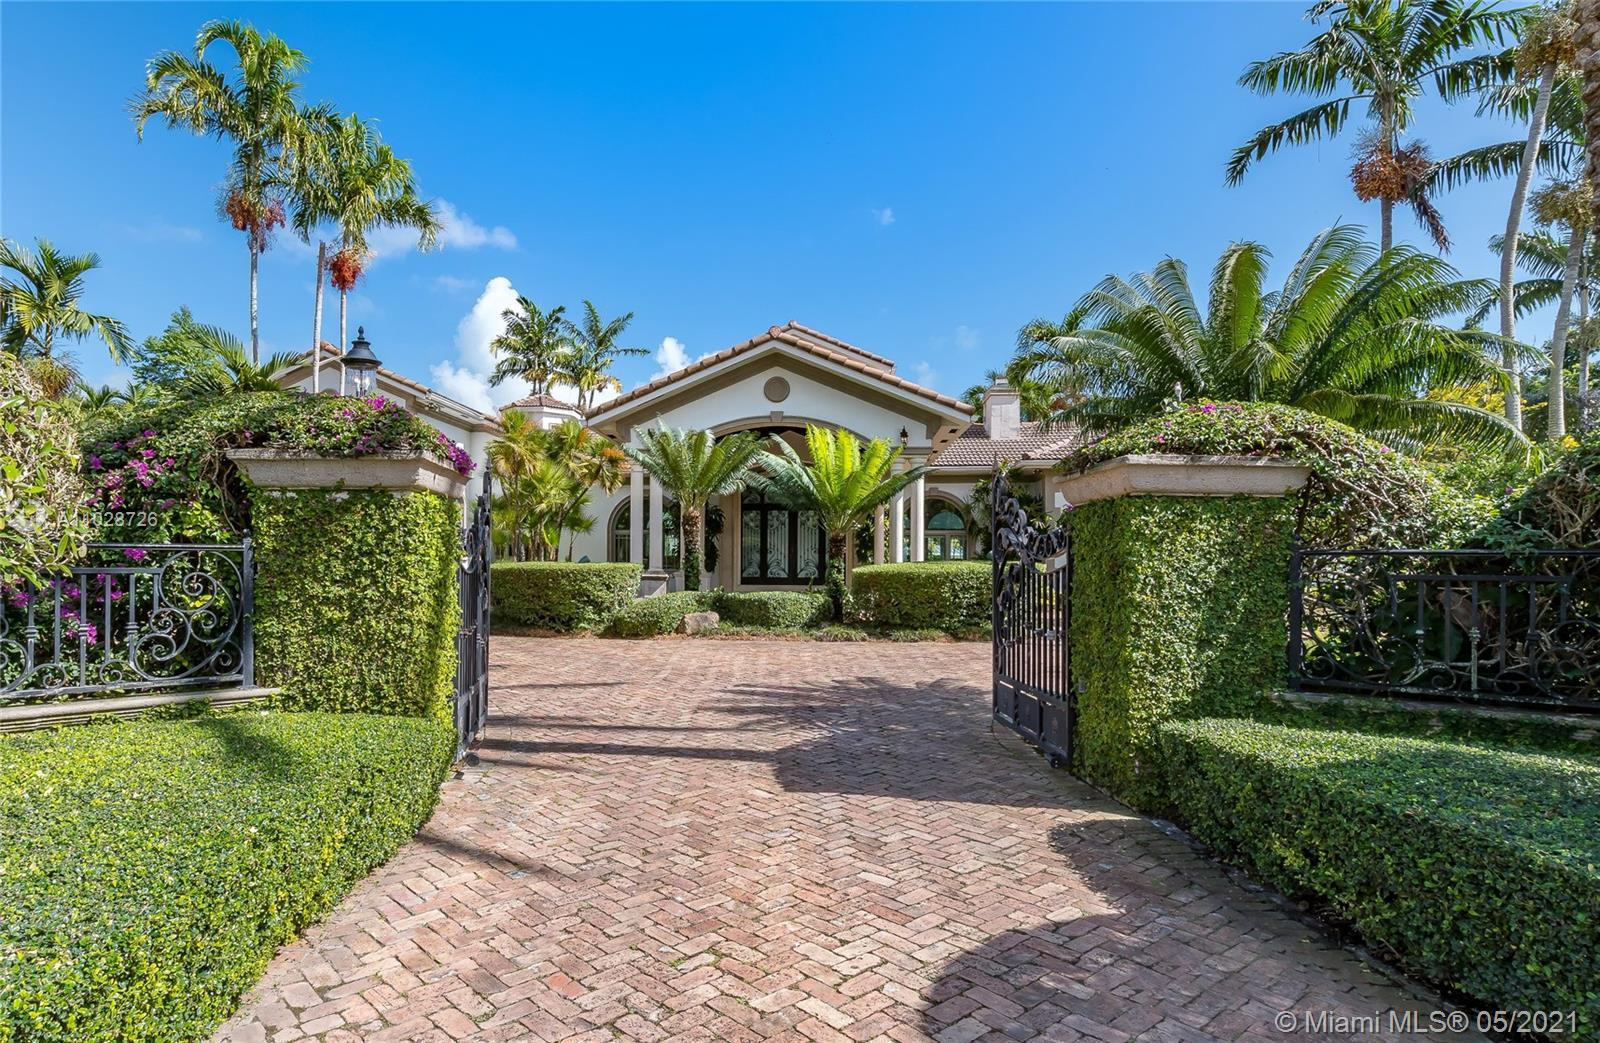 This spacious one story home located in N Pinecrest is privately gated & sits on 36,590 sqft of land